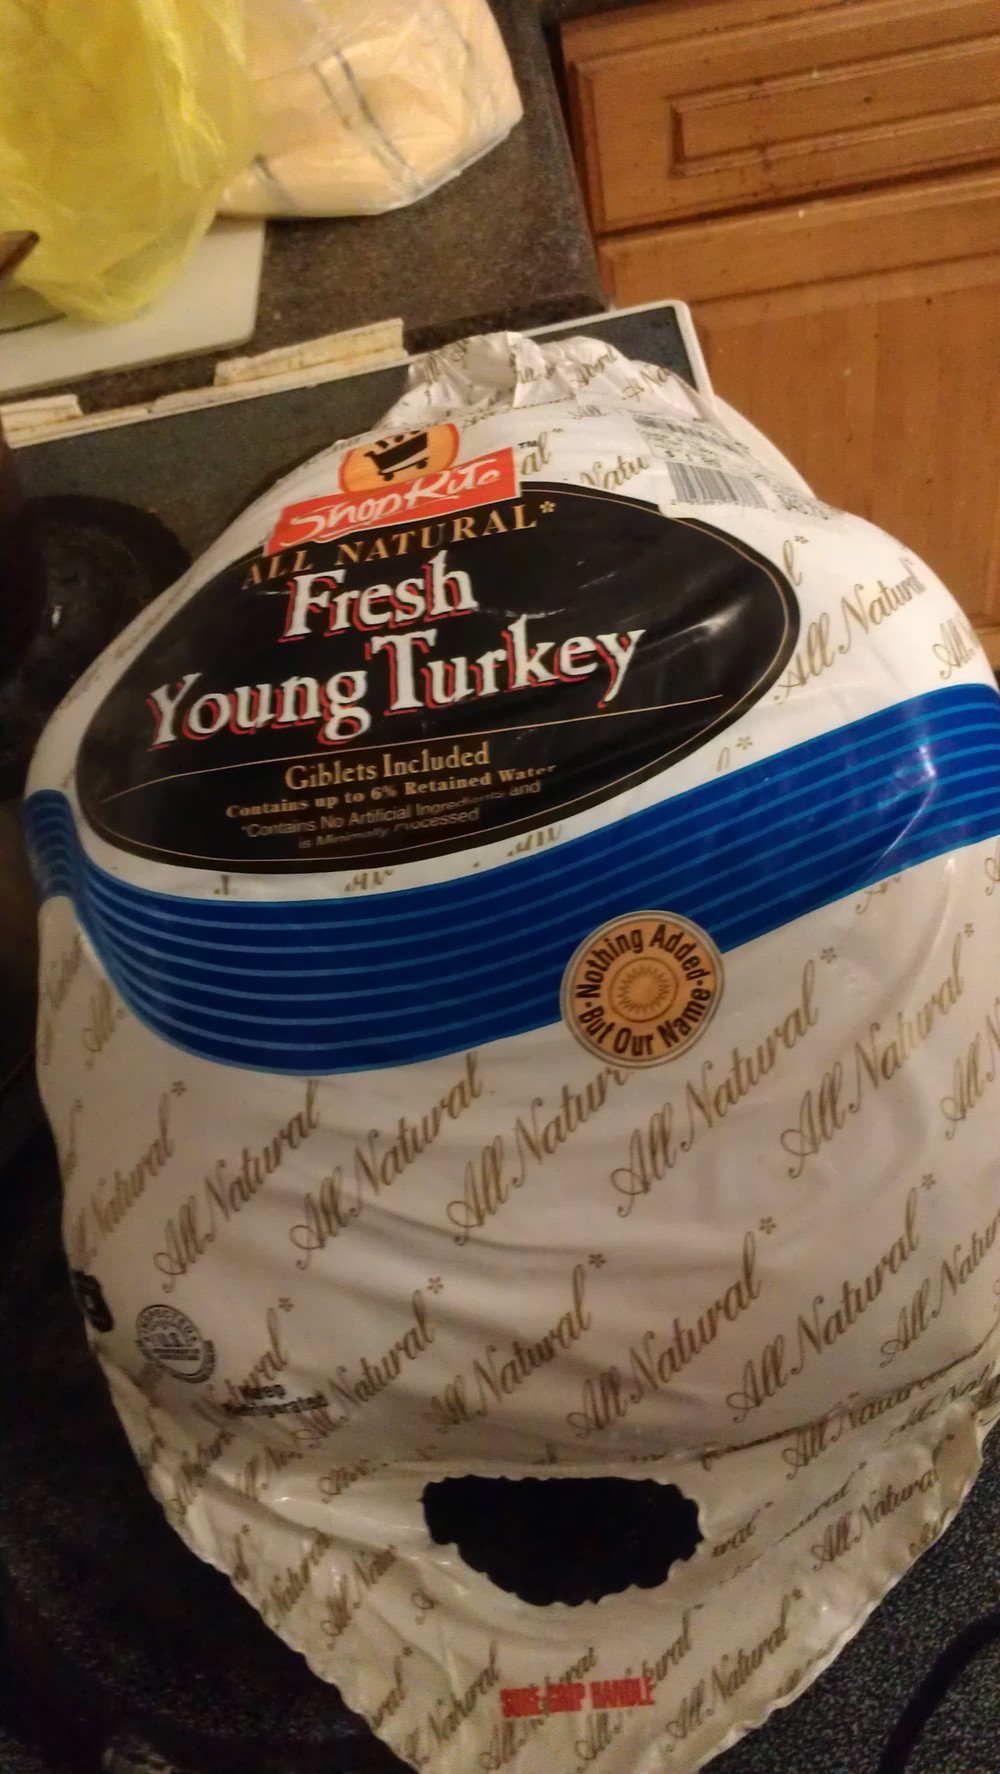 Our Turkey just before it was unwrapped!